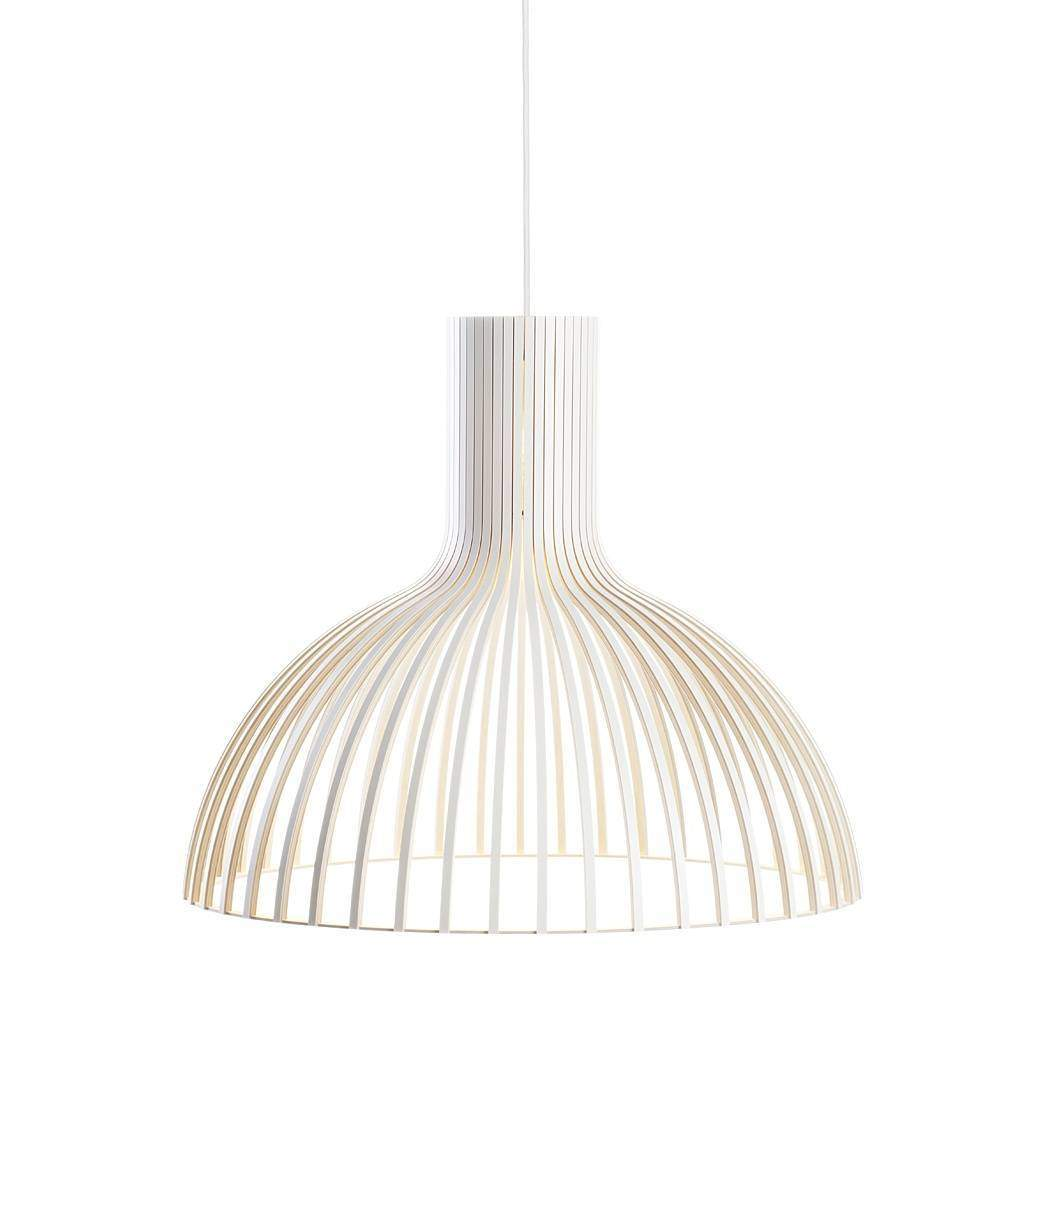 Secto Design Verlichting Secto Design Victo 4250 Hanglamp Witwoonkamer